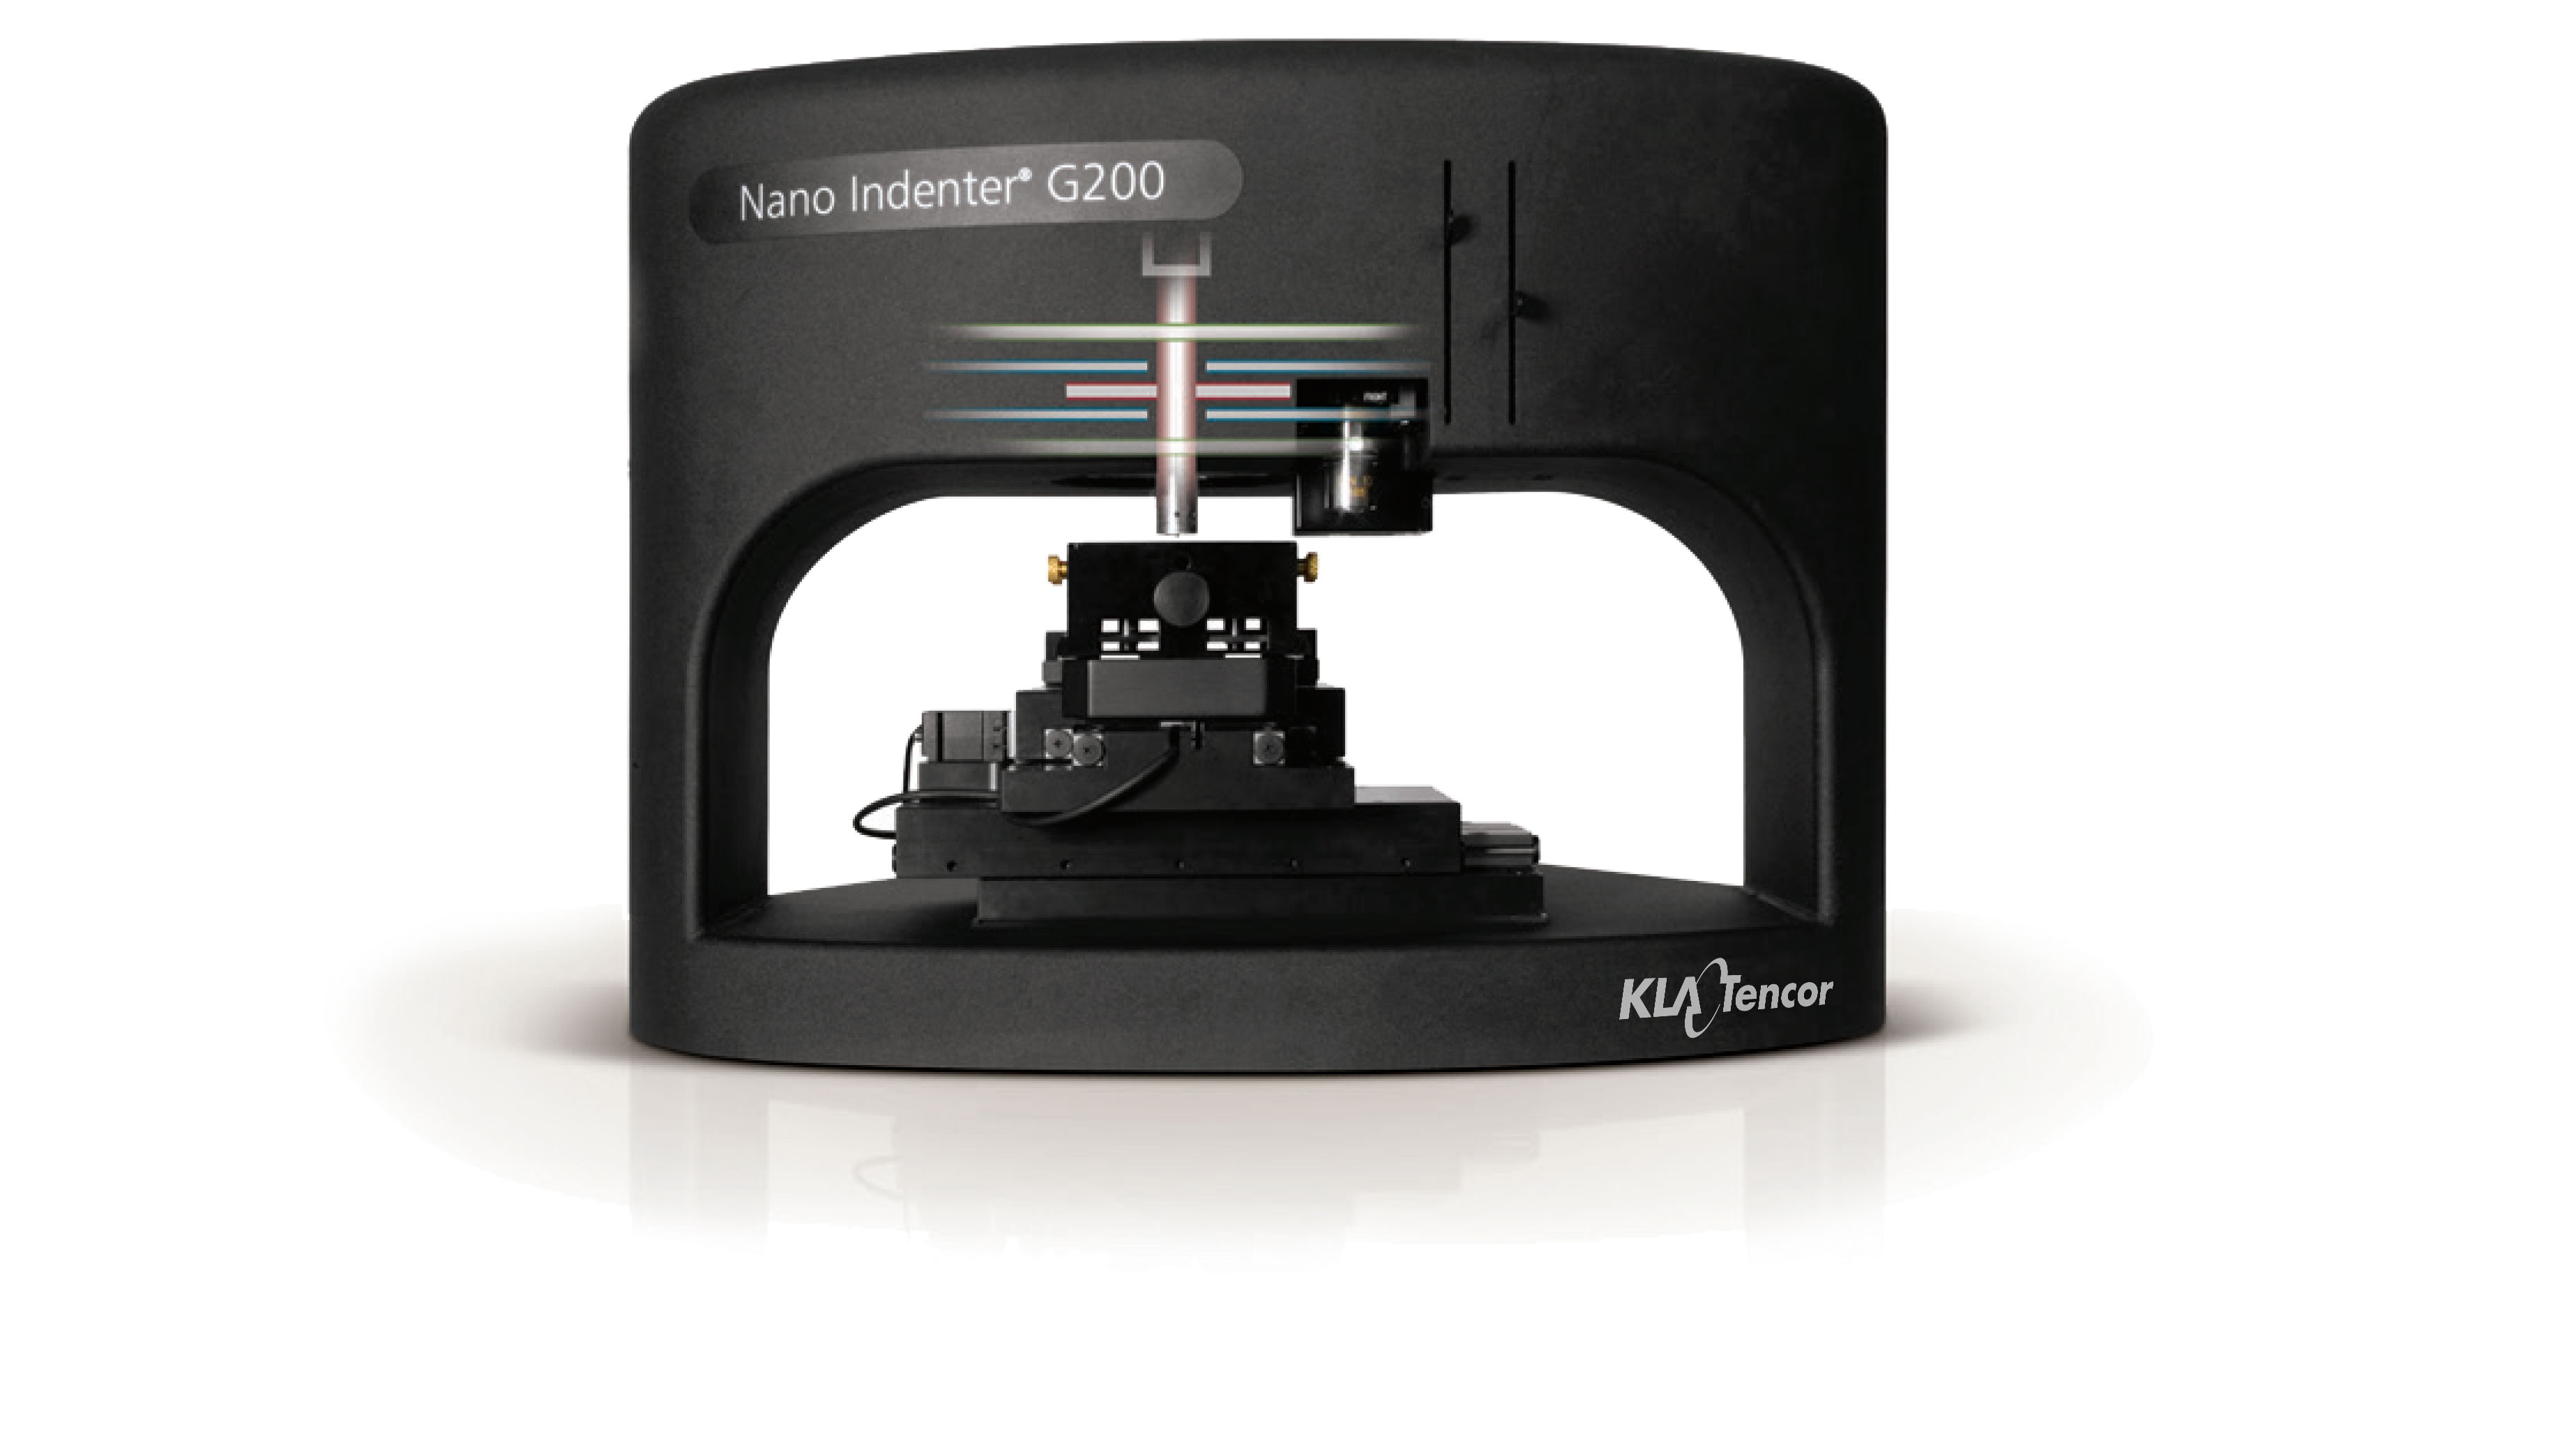 Nano Indenter G200 from Agilent Technologies